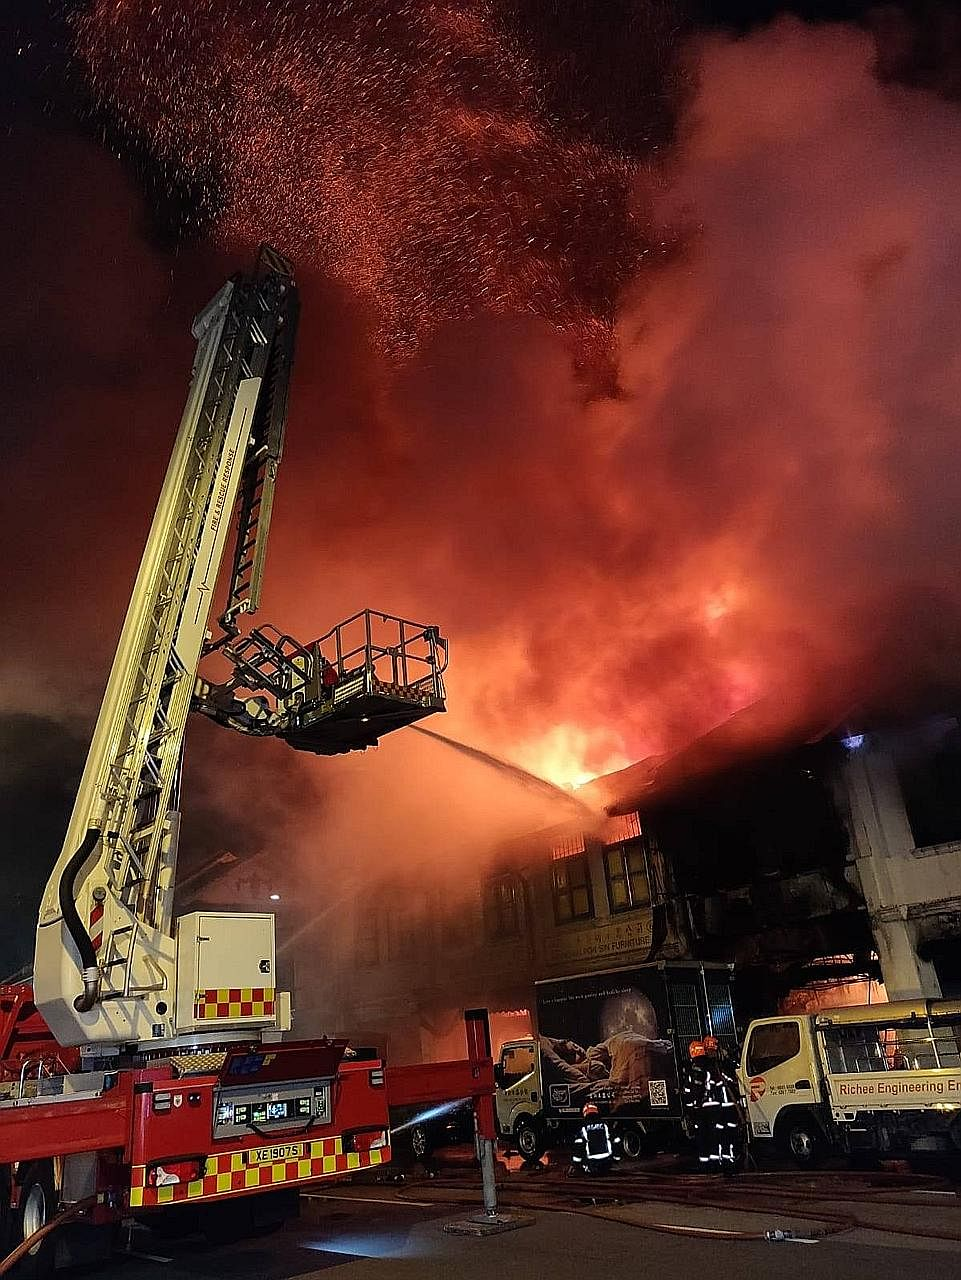 The Singapore Civil Defence Force was alerted to a fire at 643 Geylang Road early yesterday morning. About 60 firefighters and 17 emergency vehicles were deployed. Damping-down operations were later carried out to prevent the fire from rekindling.